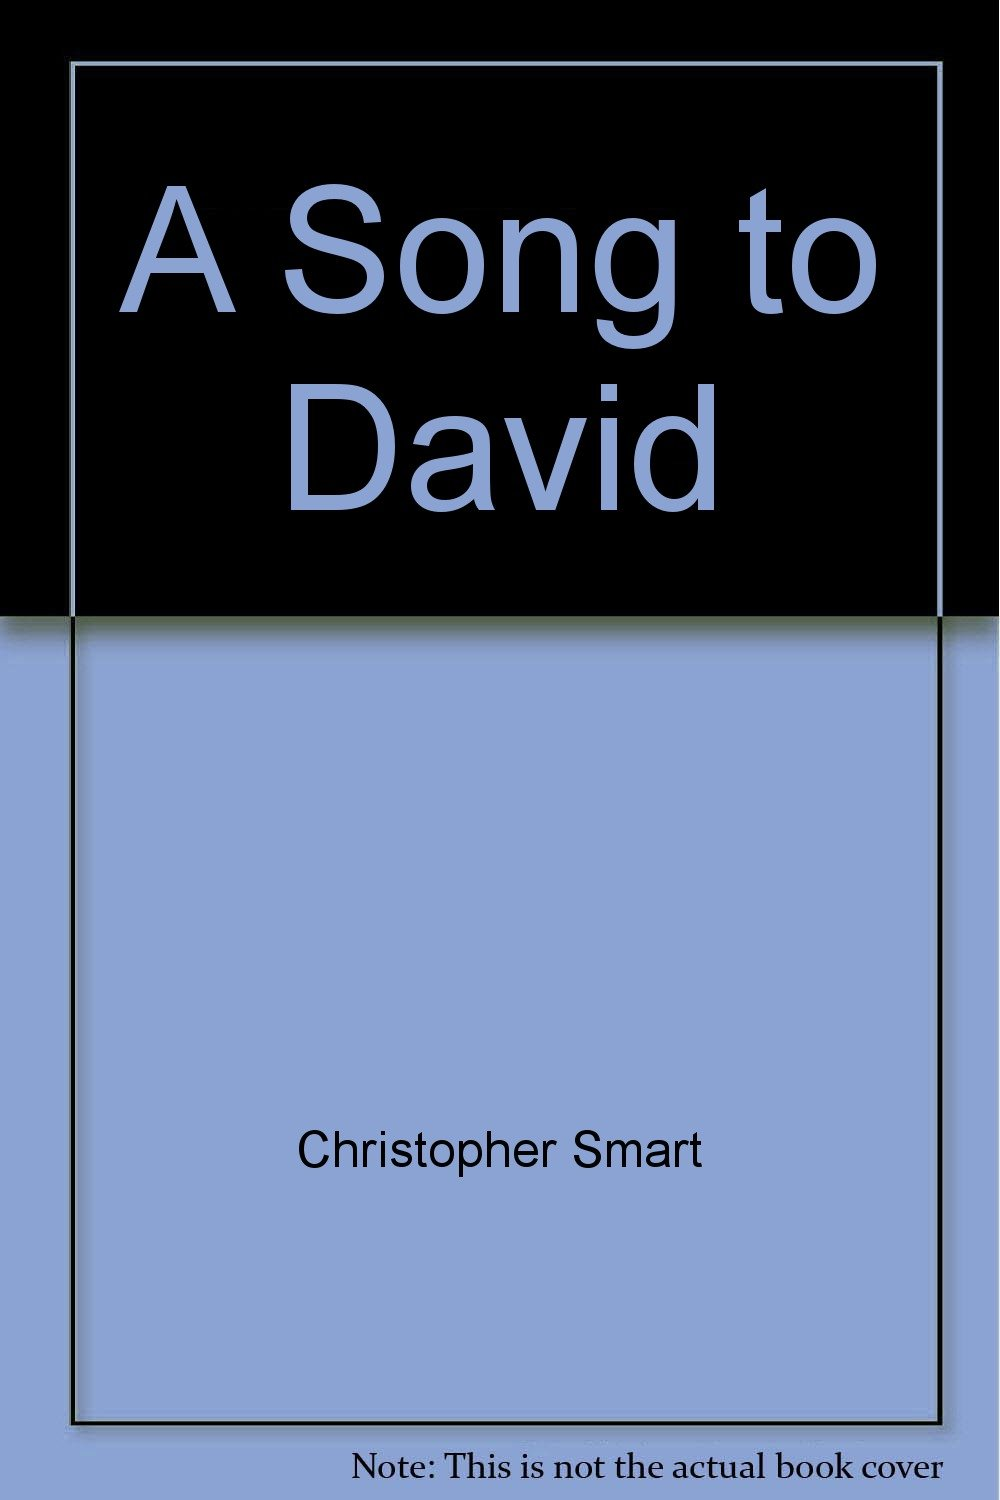 christopher smart a song to david